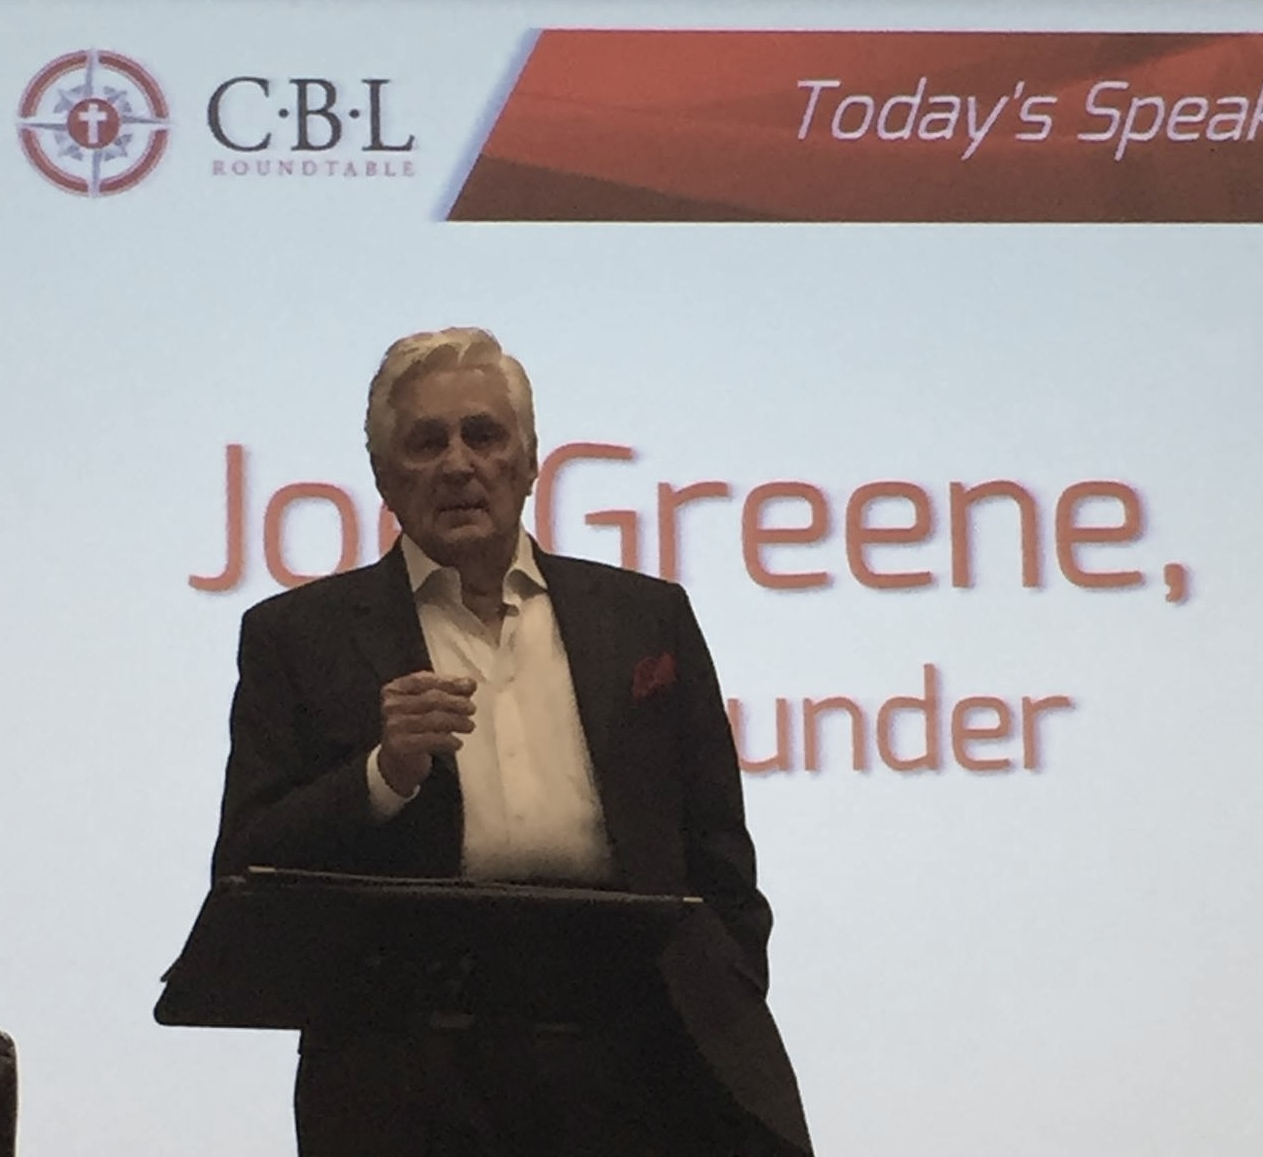 Joe speaking at CLB 12152015.jpg